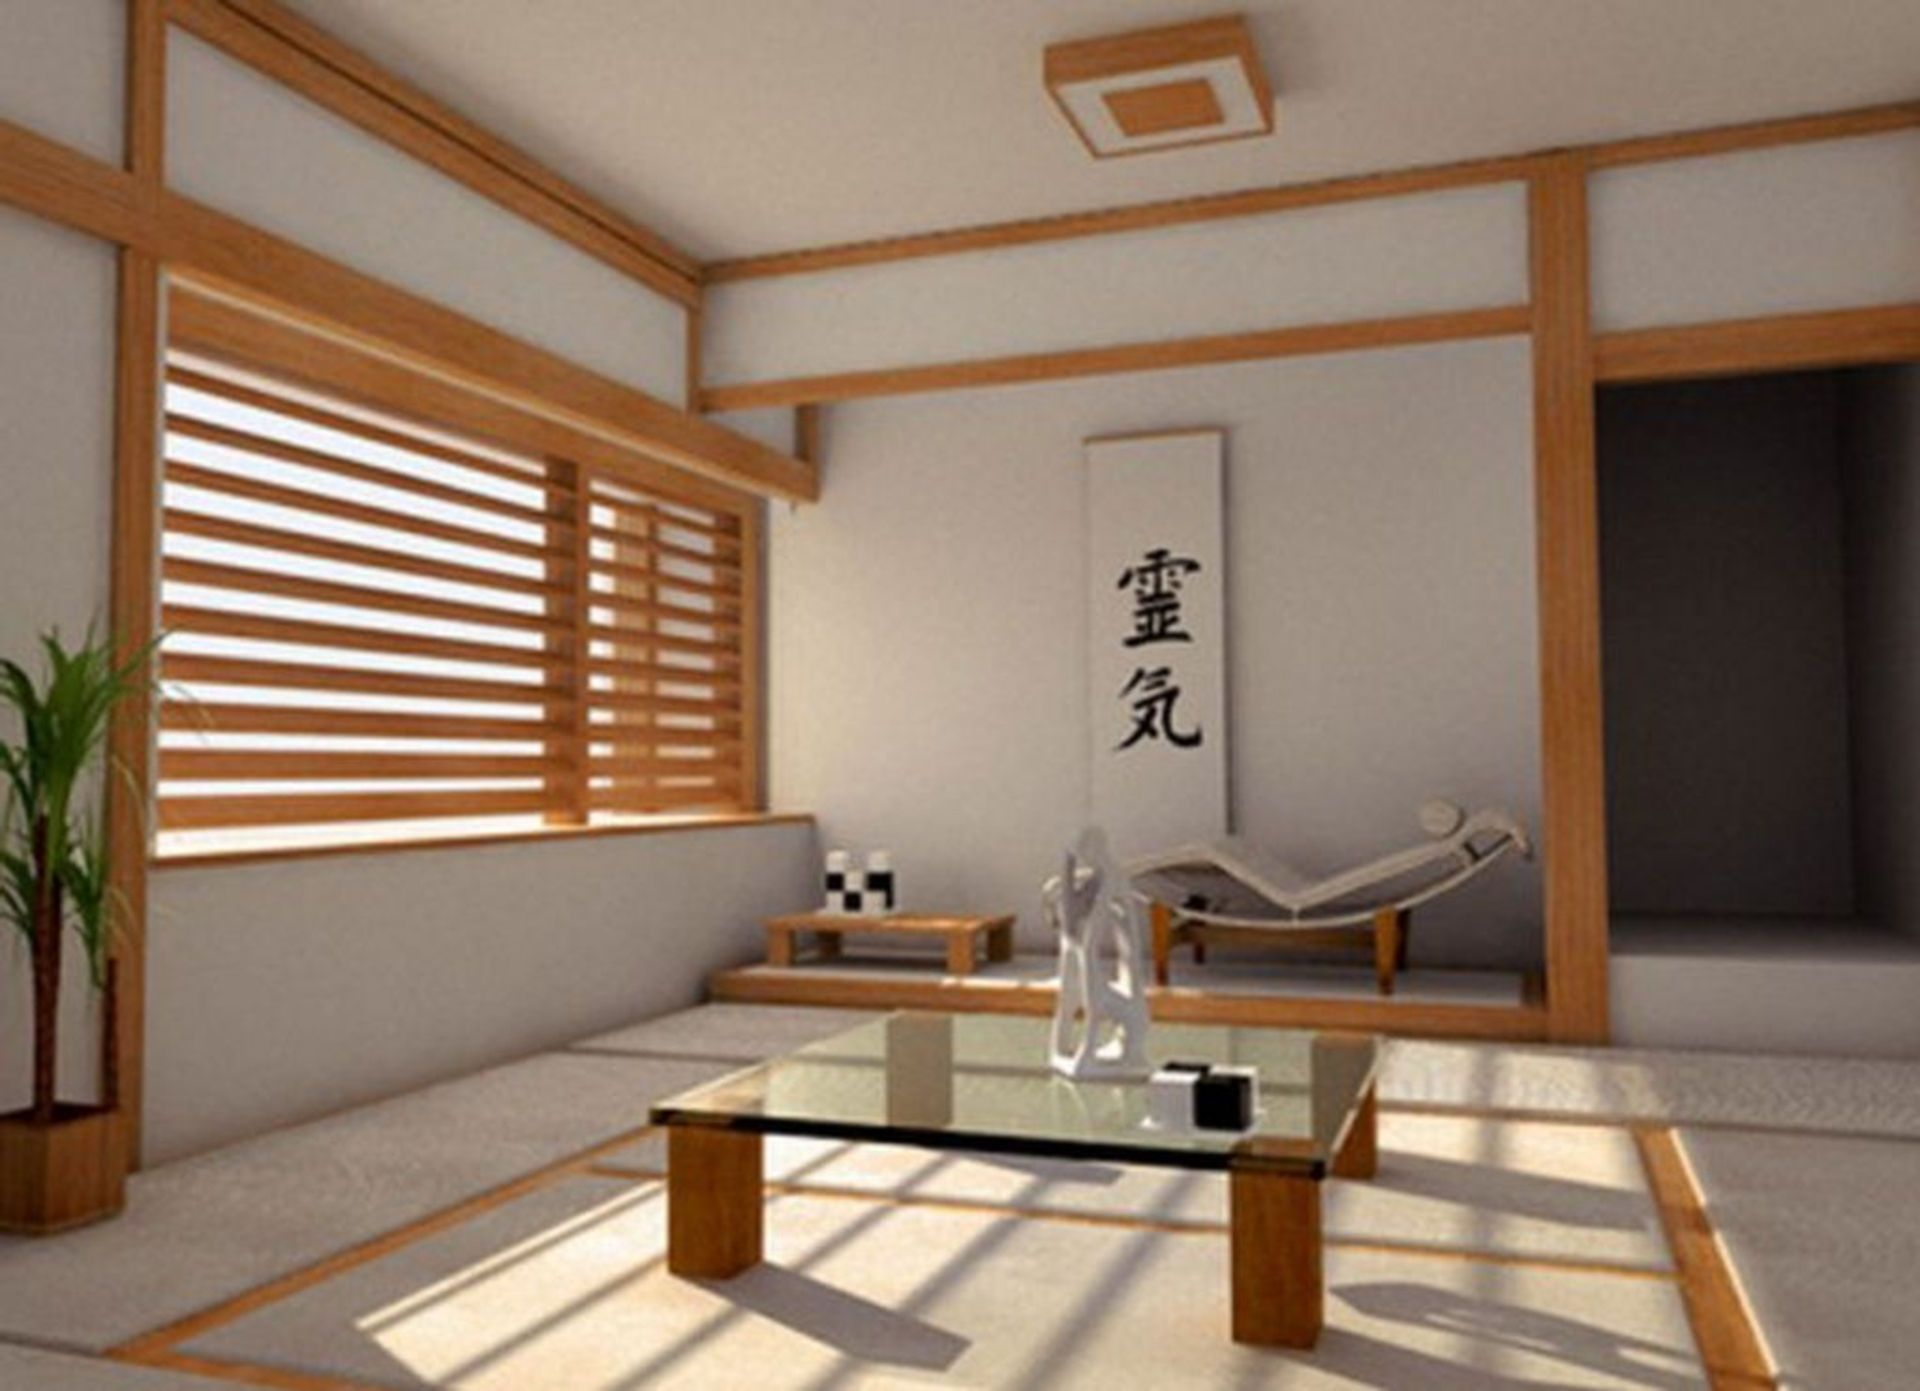 Glamorous-japanese-home-style-recipes-with-the-sims-3-japanese ...